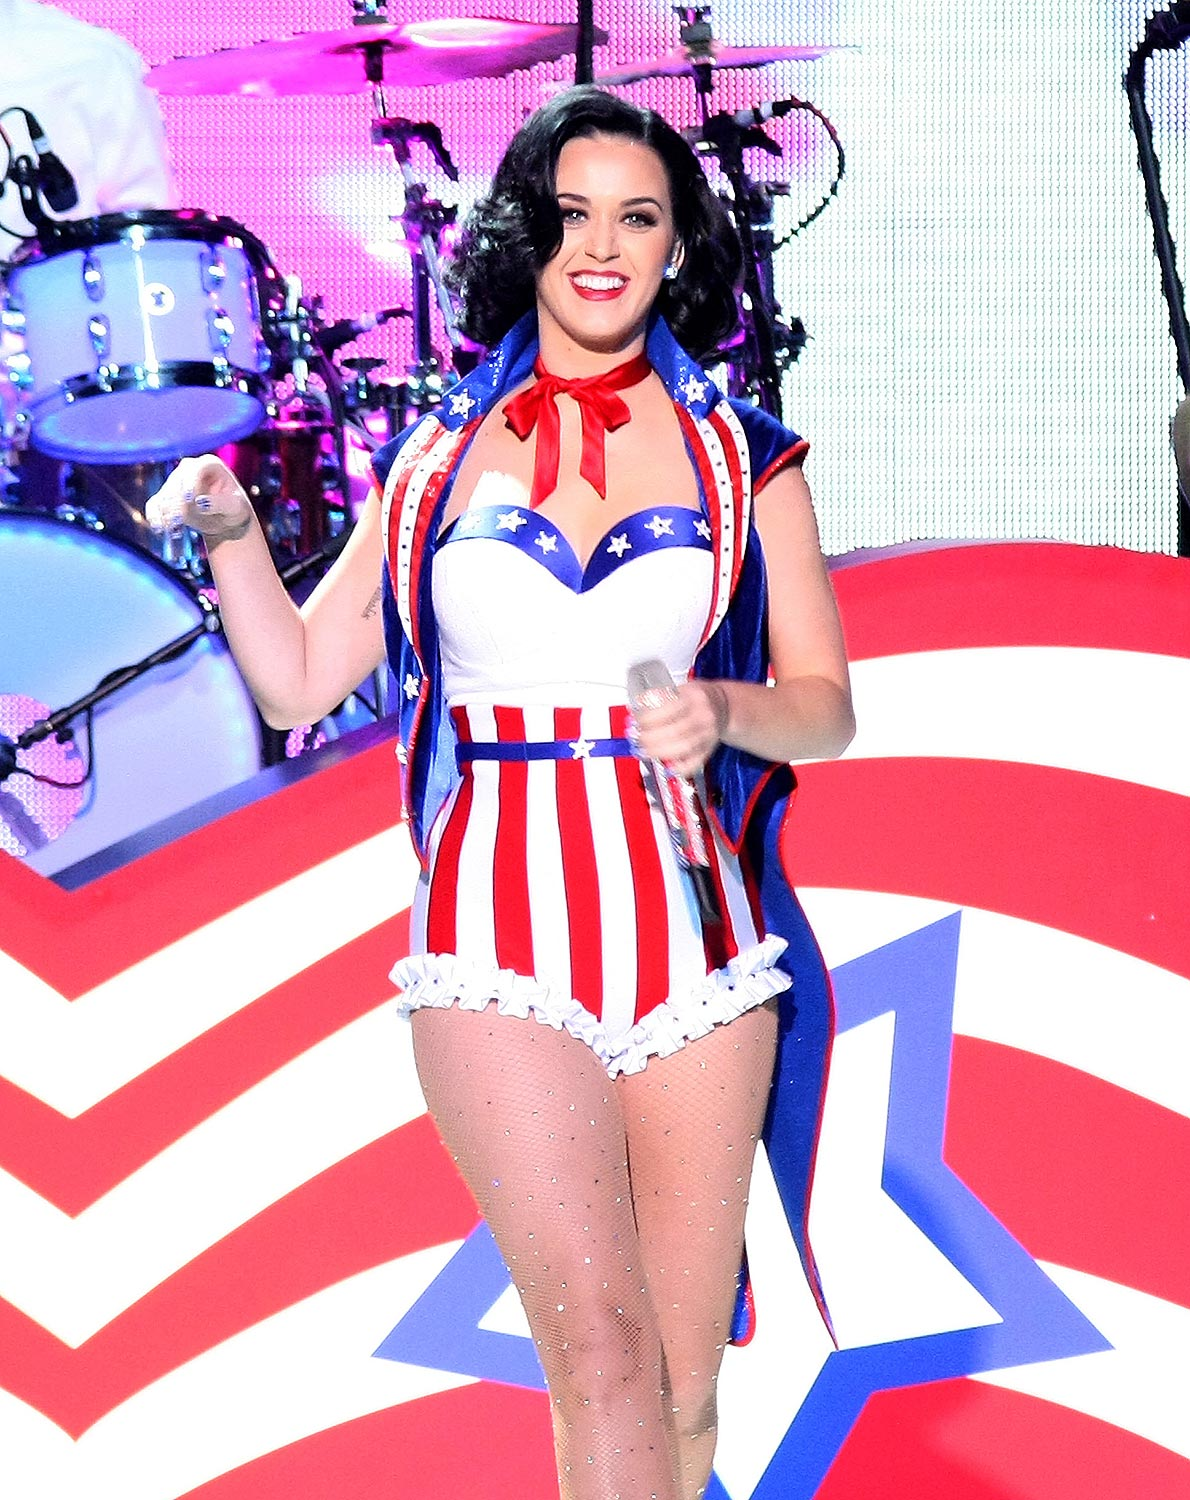 Katy Perry costumes